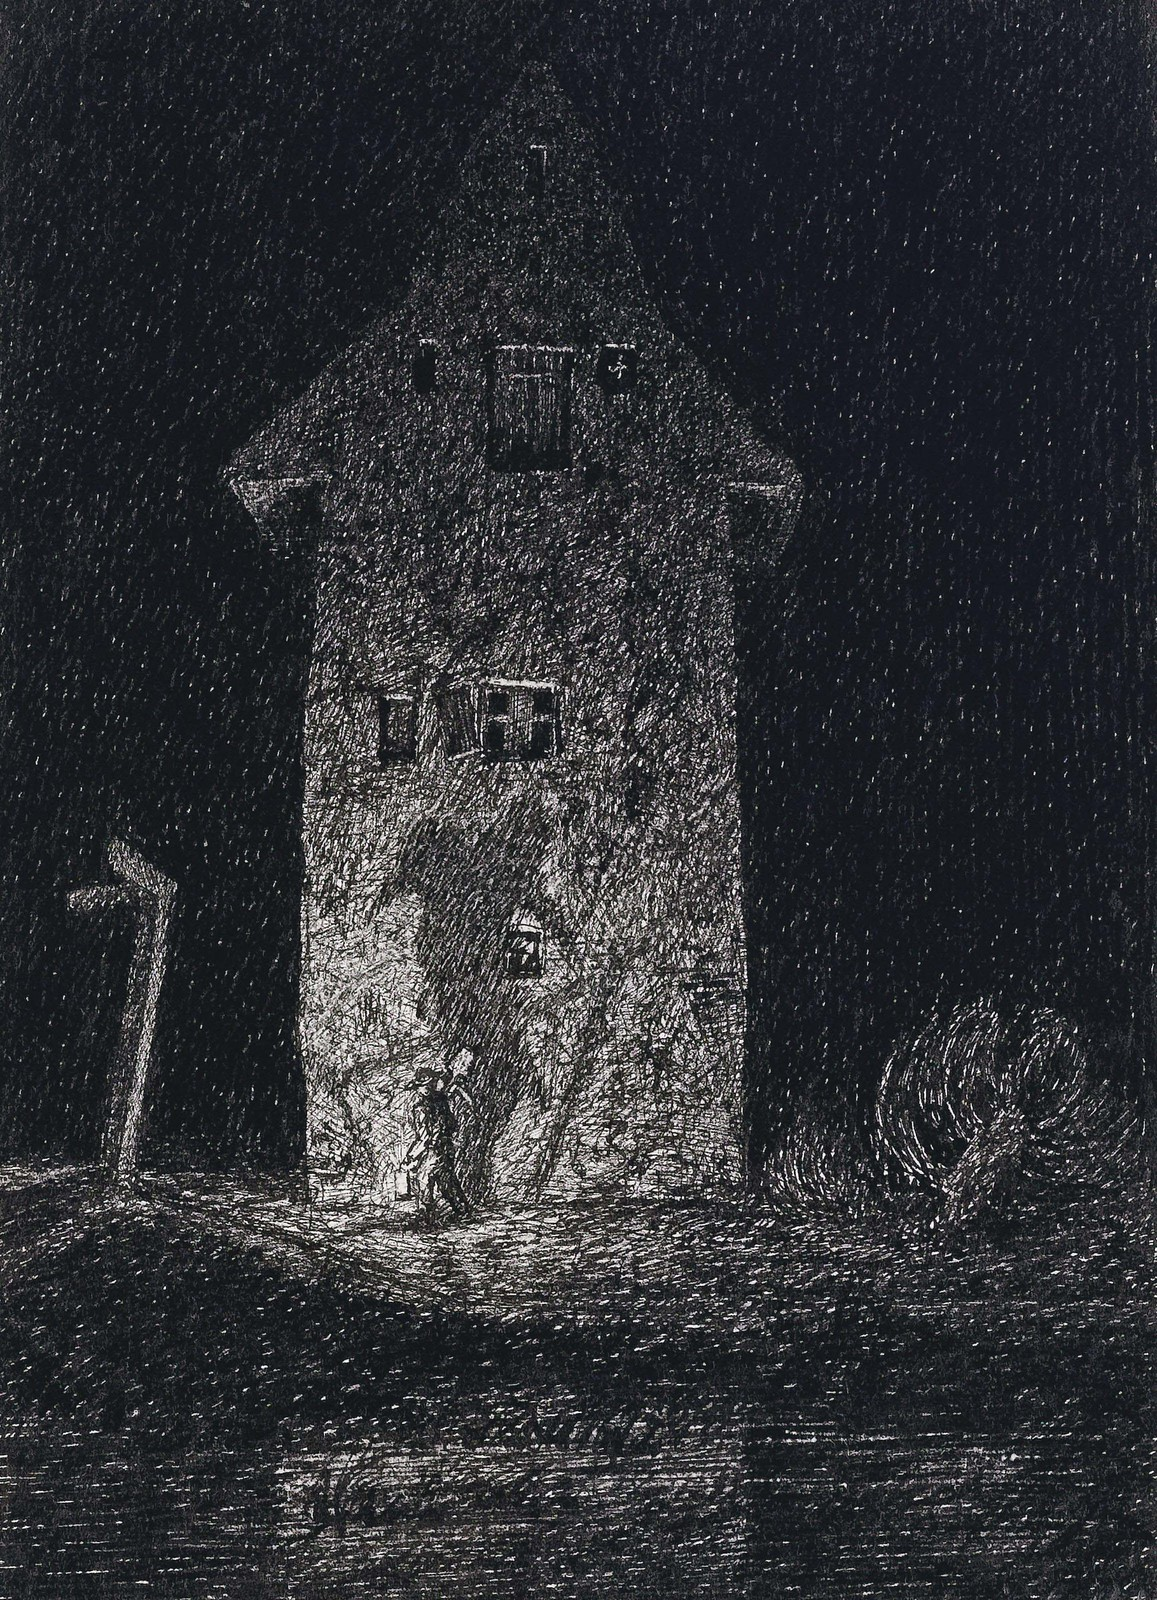 Fritz Schwimbeck - Fantasies About An Old House, 1917